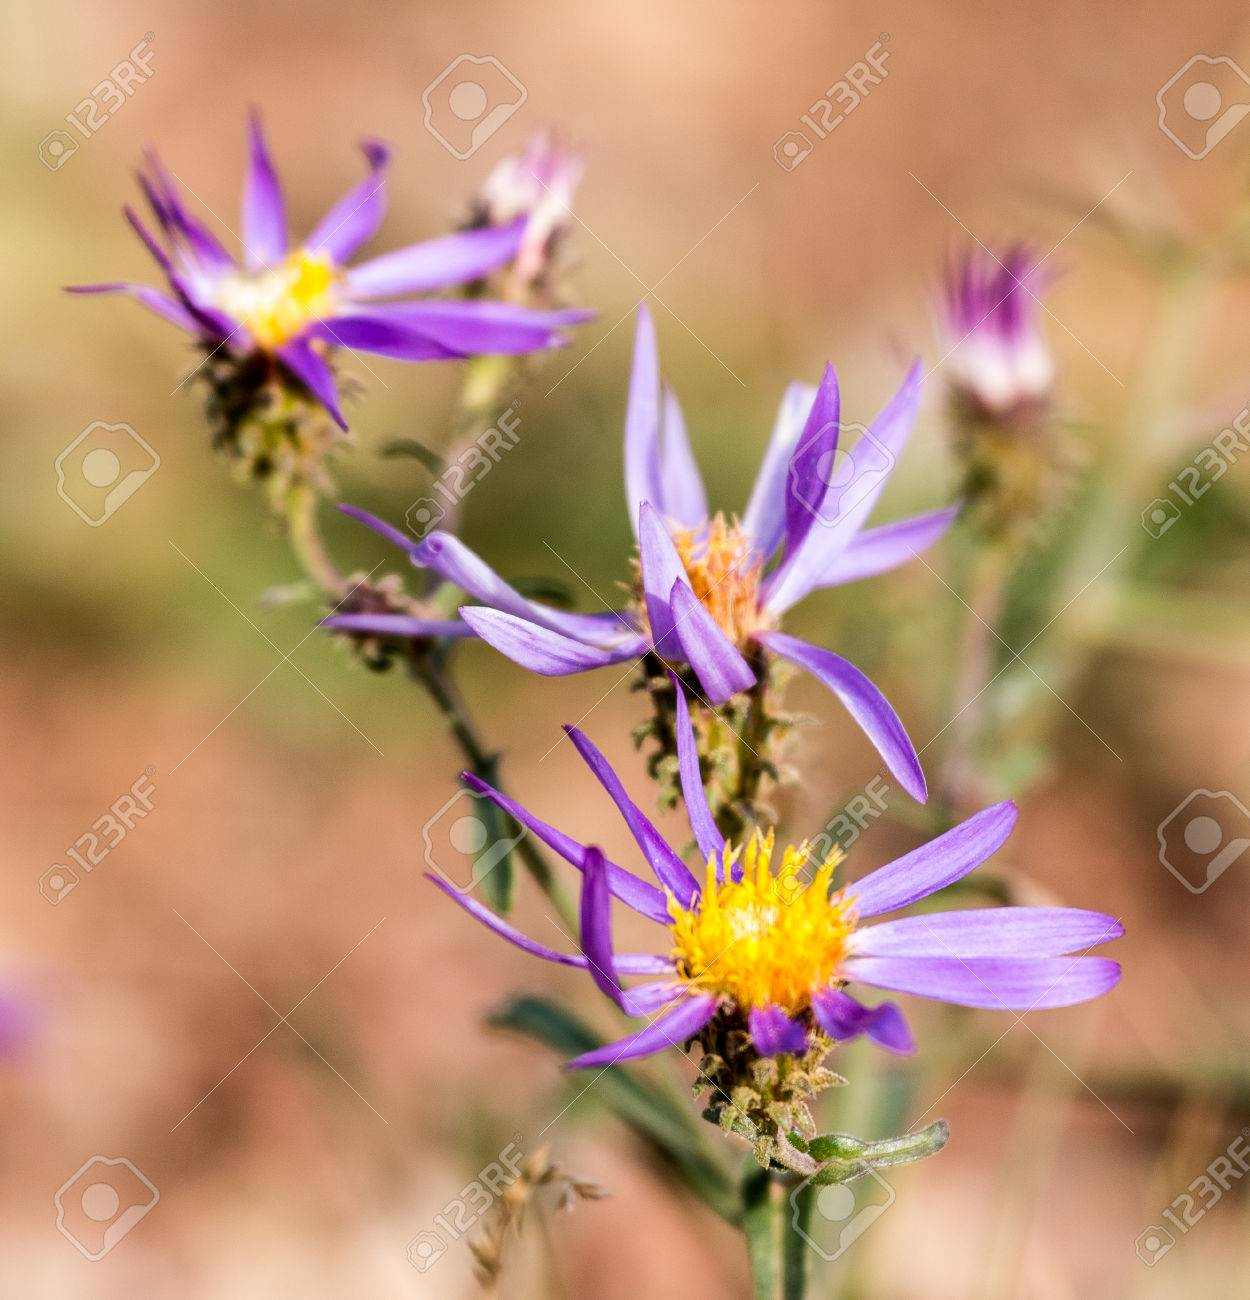 Purple Wild Flowers With Yellow Center Bloom In An Alpine Meadow